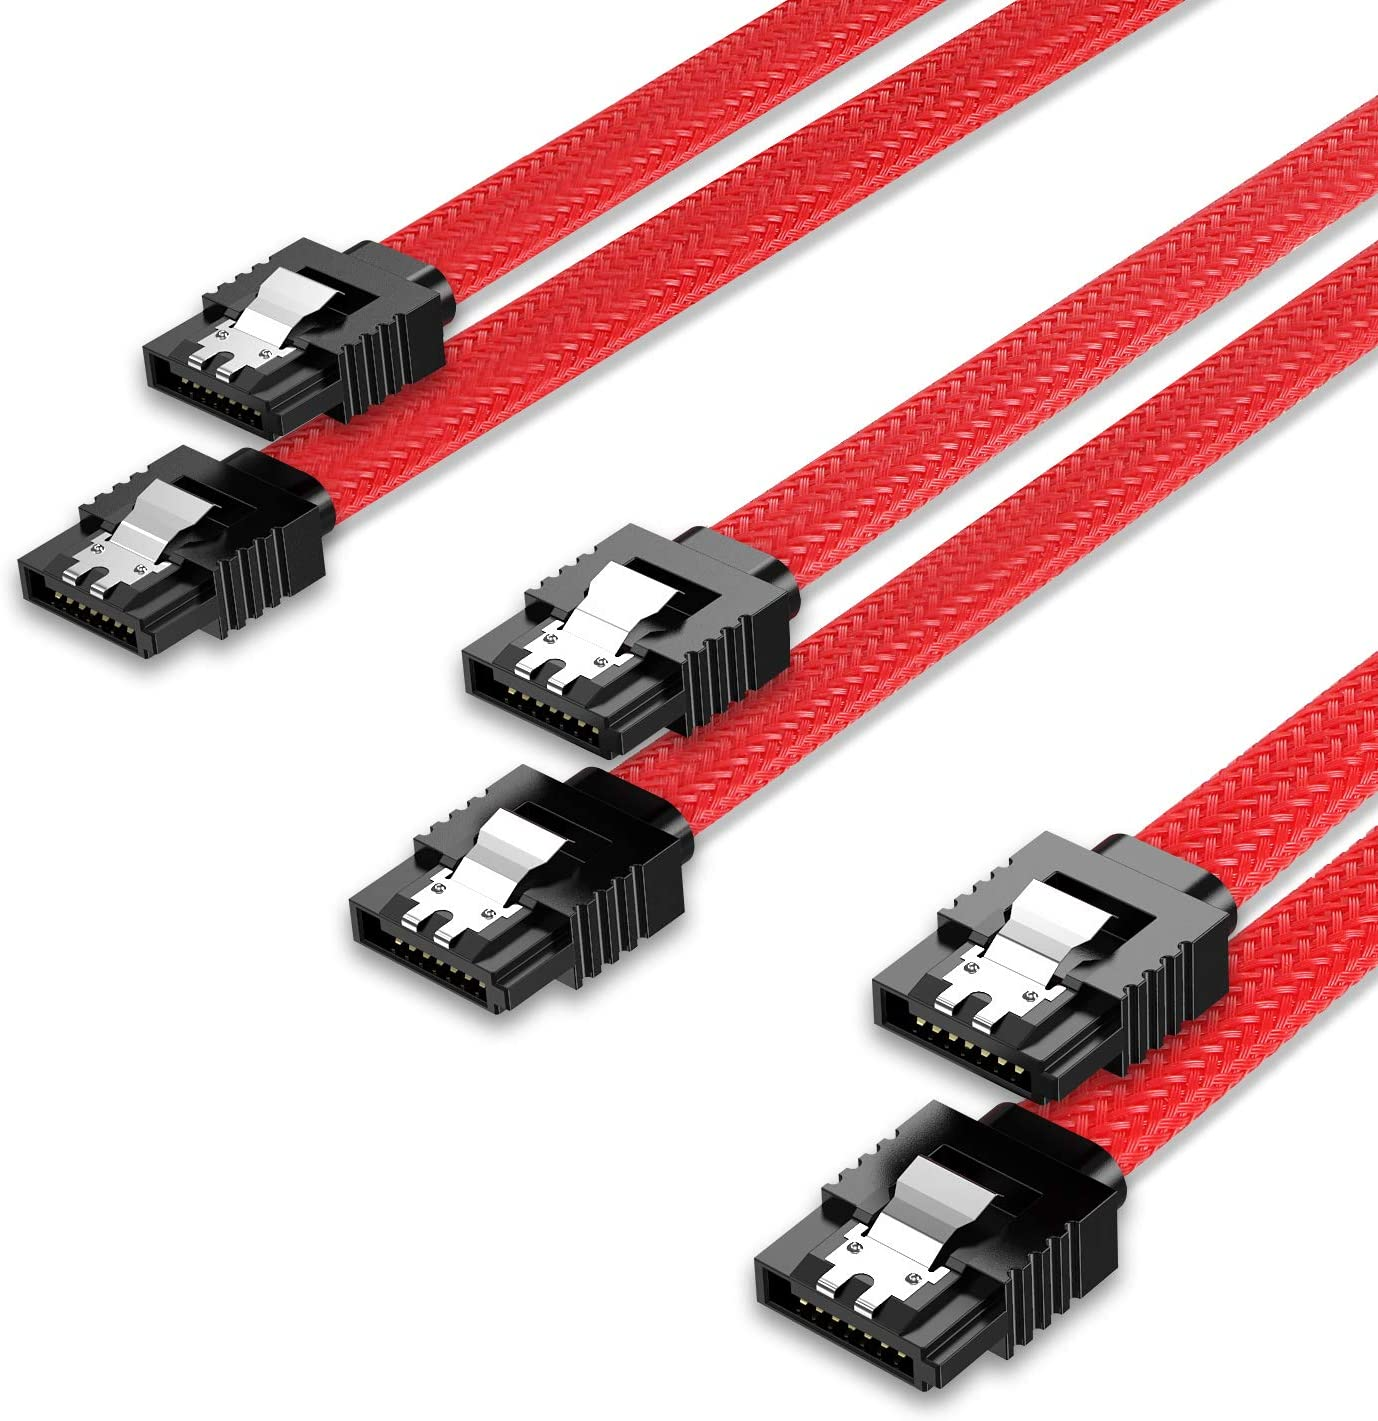 QIVYNSRY 3PACK SATA Cable III 3 Pack 6Gbps Straight HDD SDD Data Cable with Locking Latch 18 Inch for SATA HDD, SSD, CD Driver, CD Writer, Red